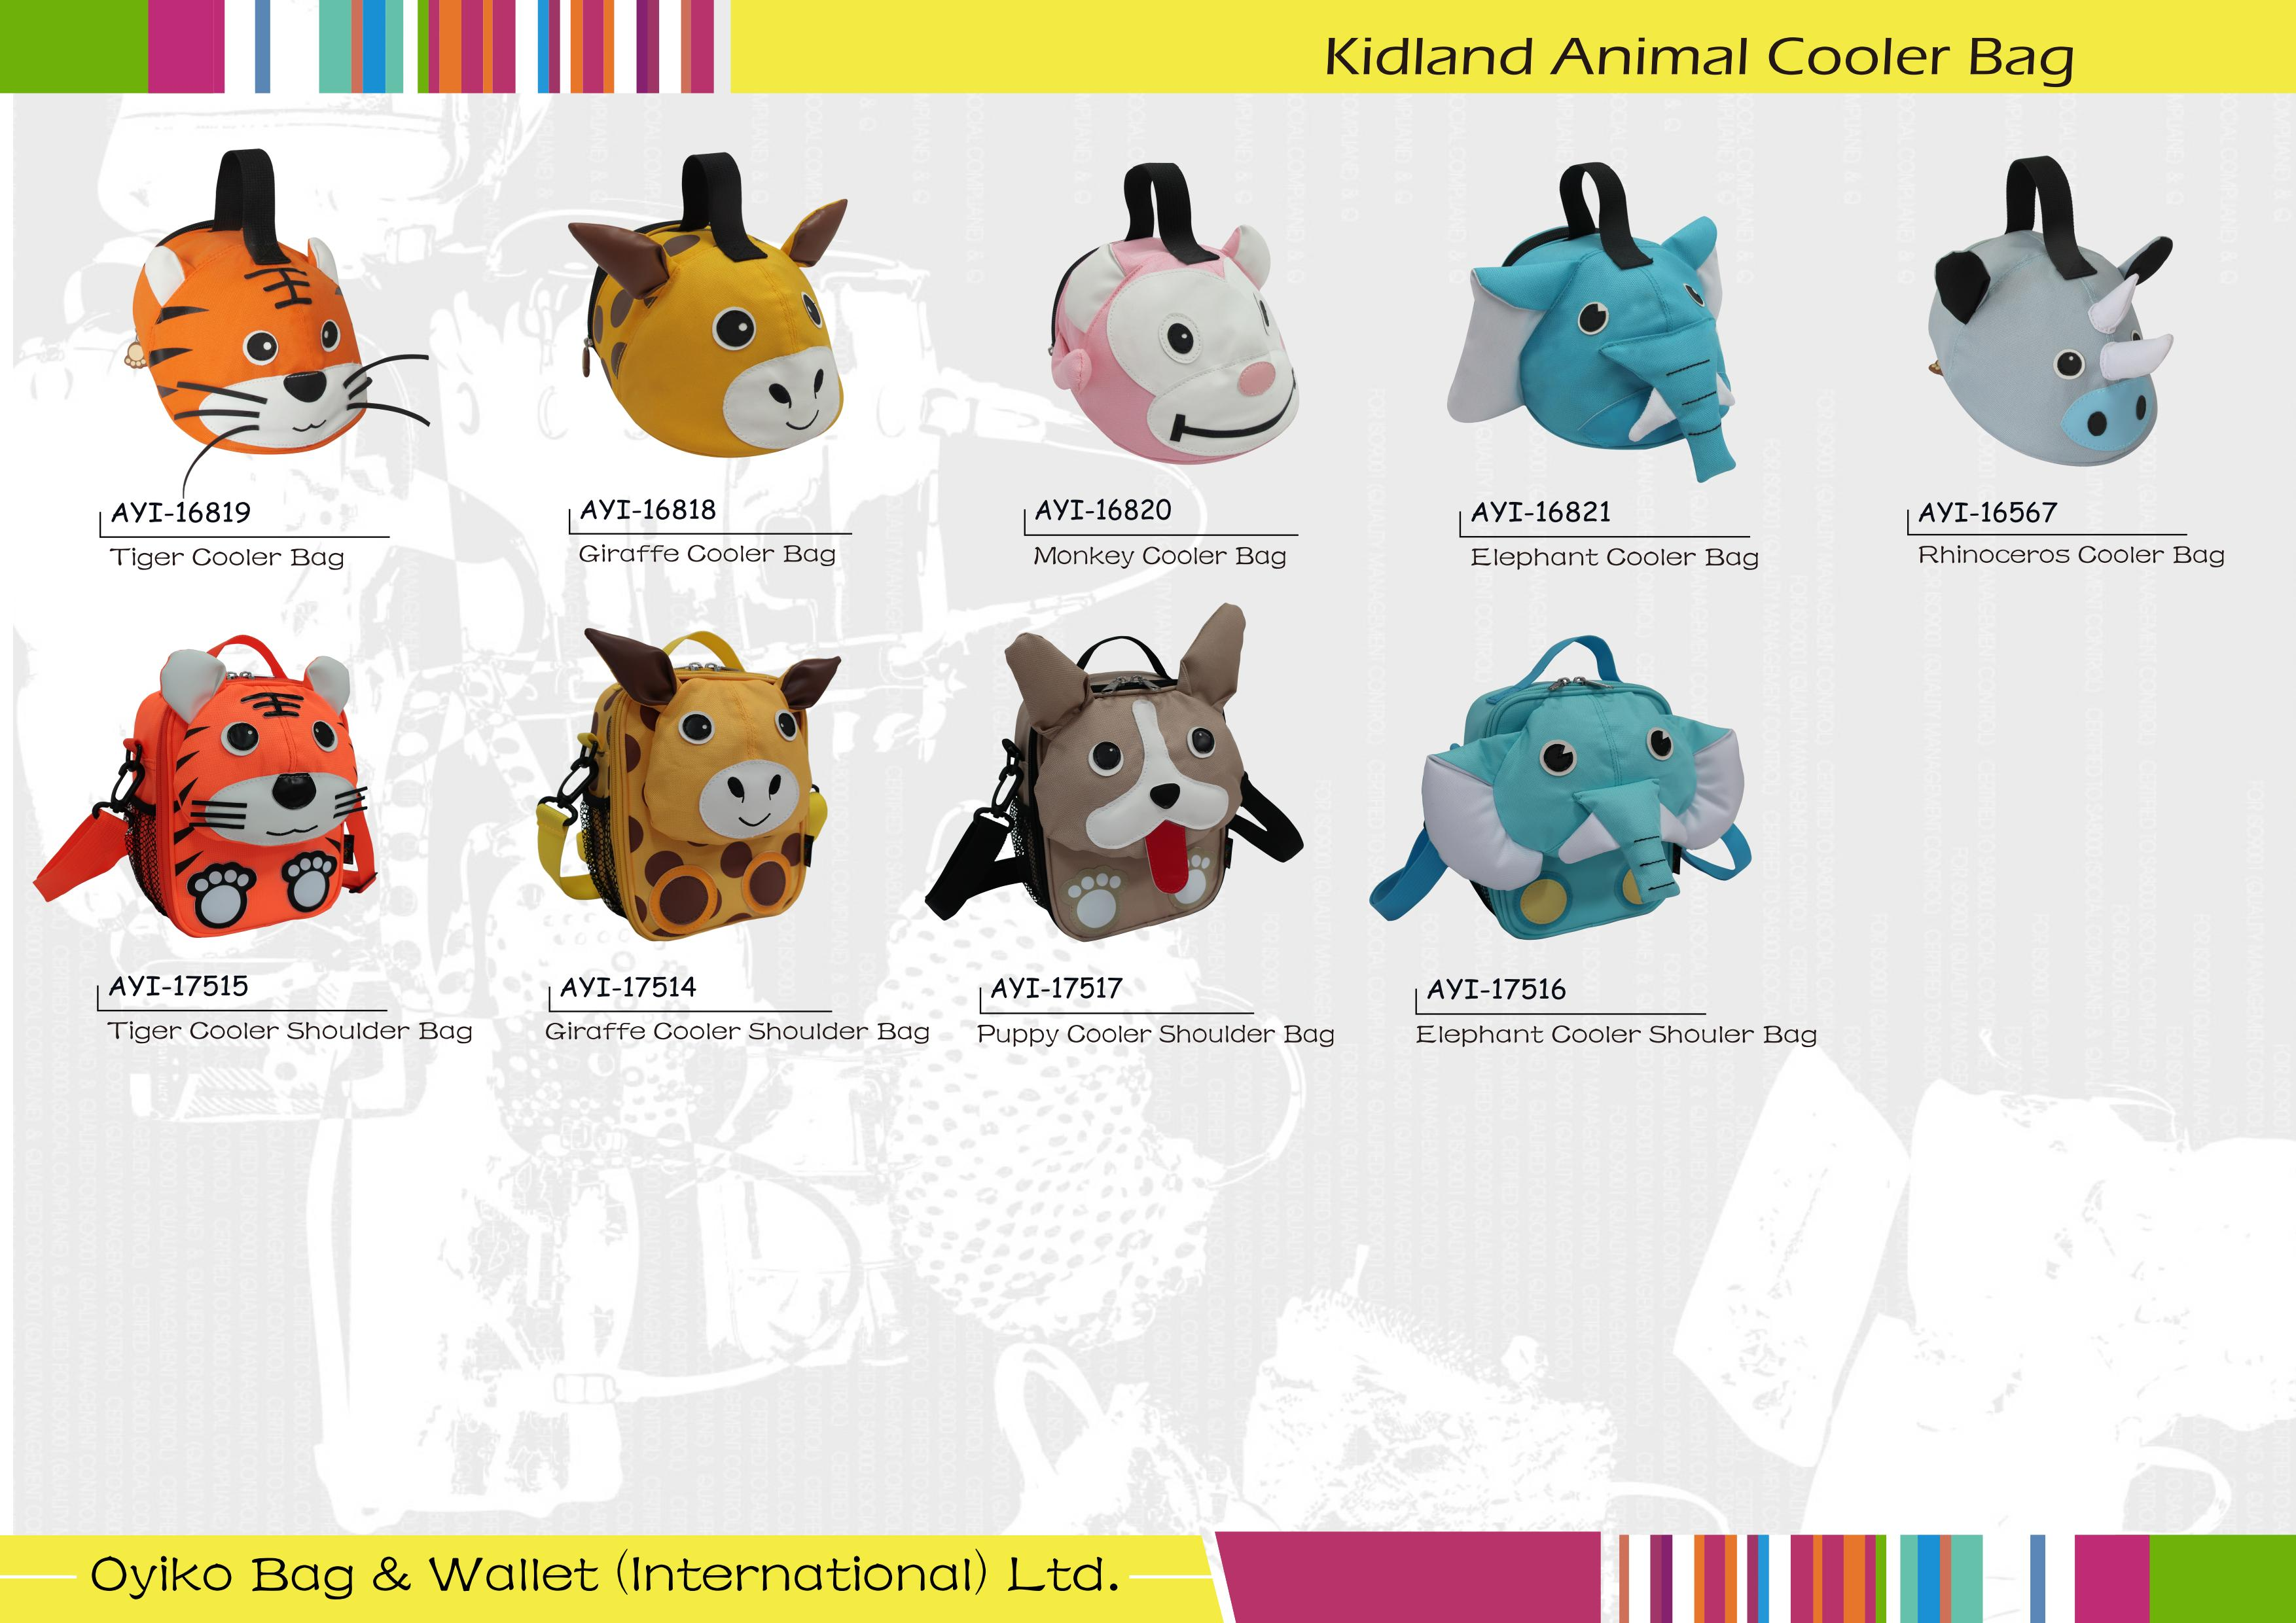 Kidland Animal Cooler Bag 2018-1_01.jpg